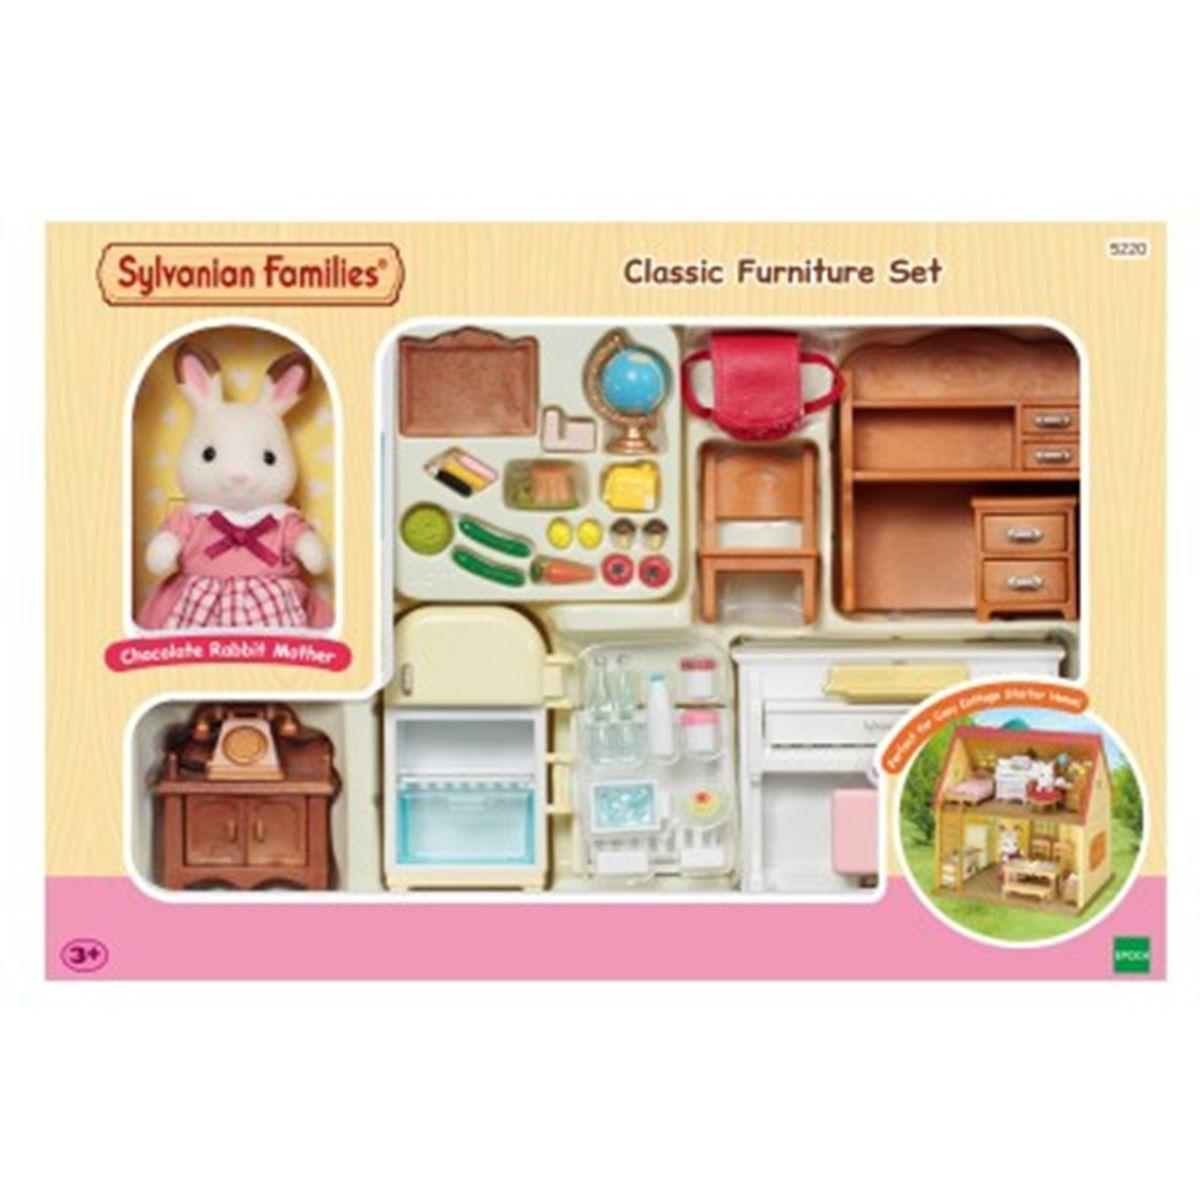 Sylvanian Families Classic Furniture Set for Cosy Cottage Starter Home (5220)